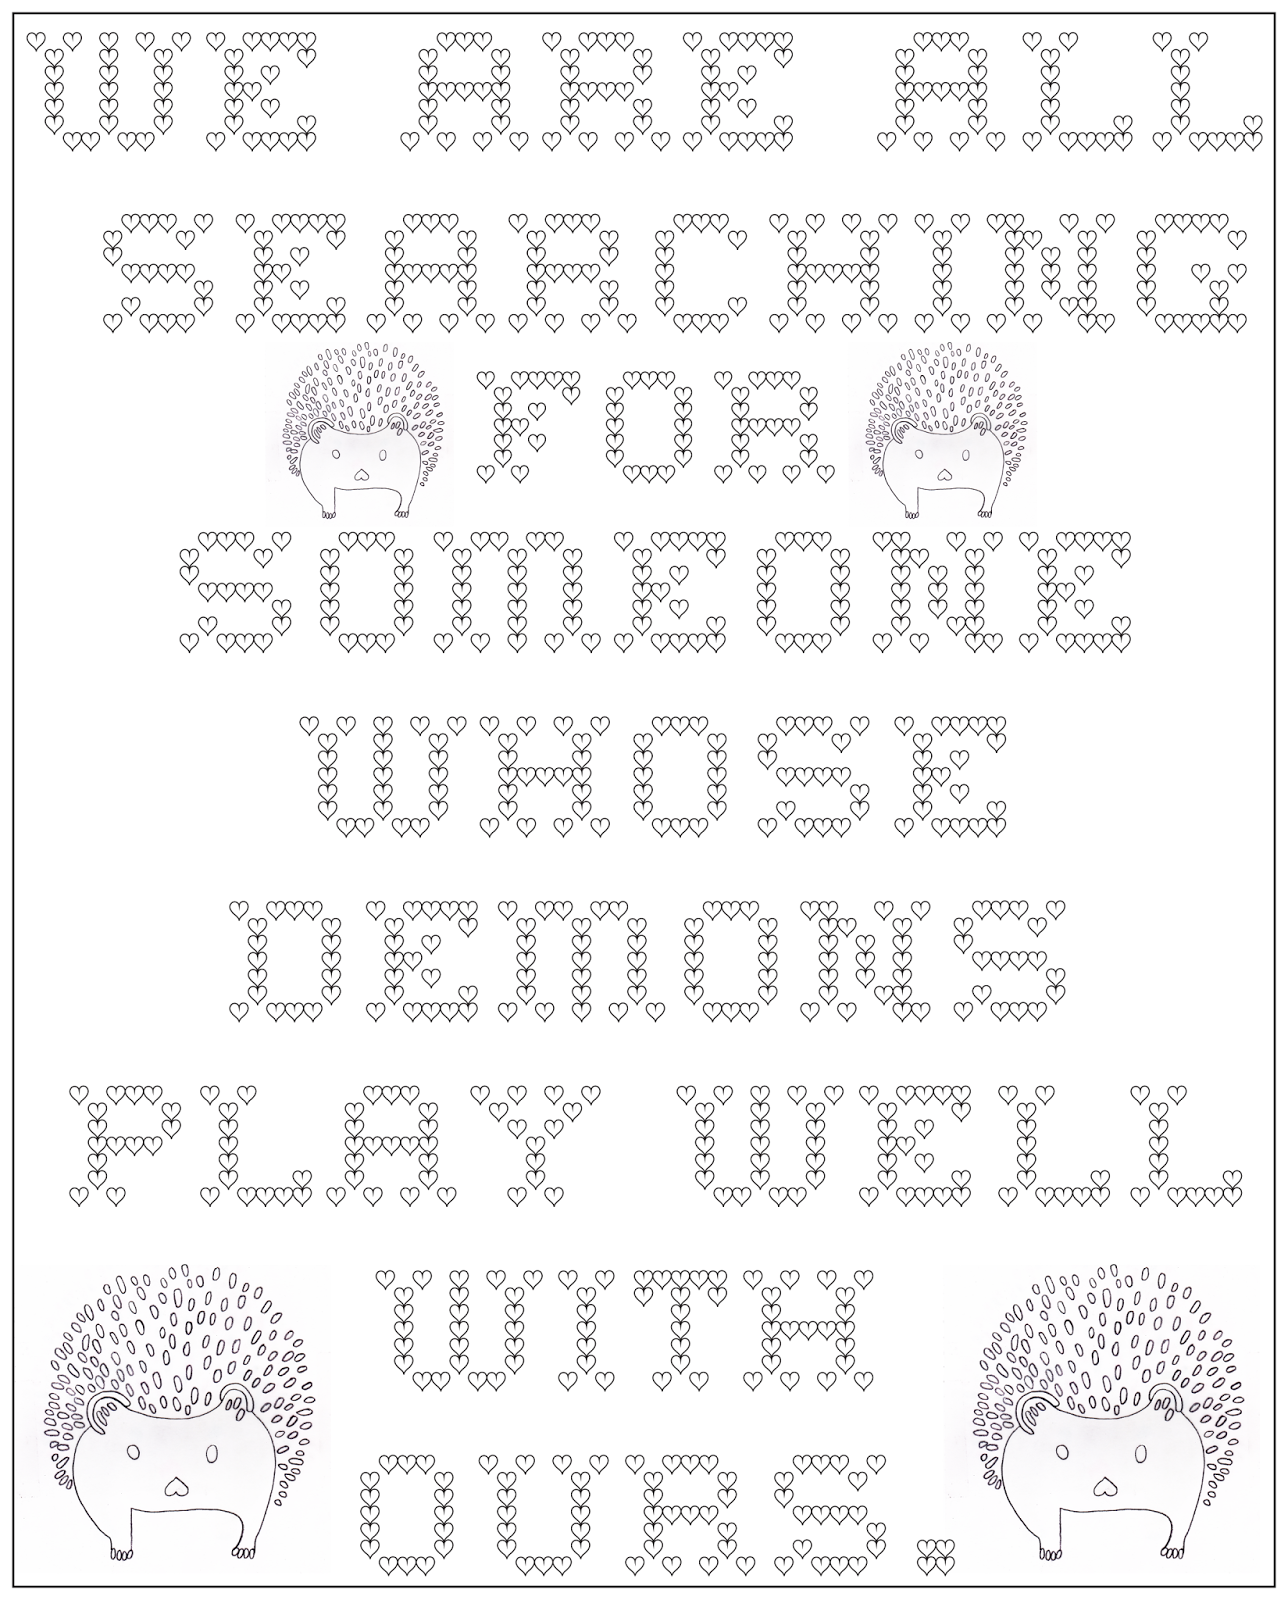 Adult coloring page searchin gfor demons, stefanie girard